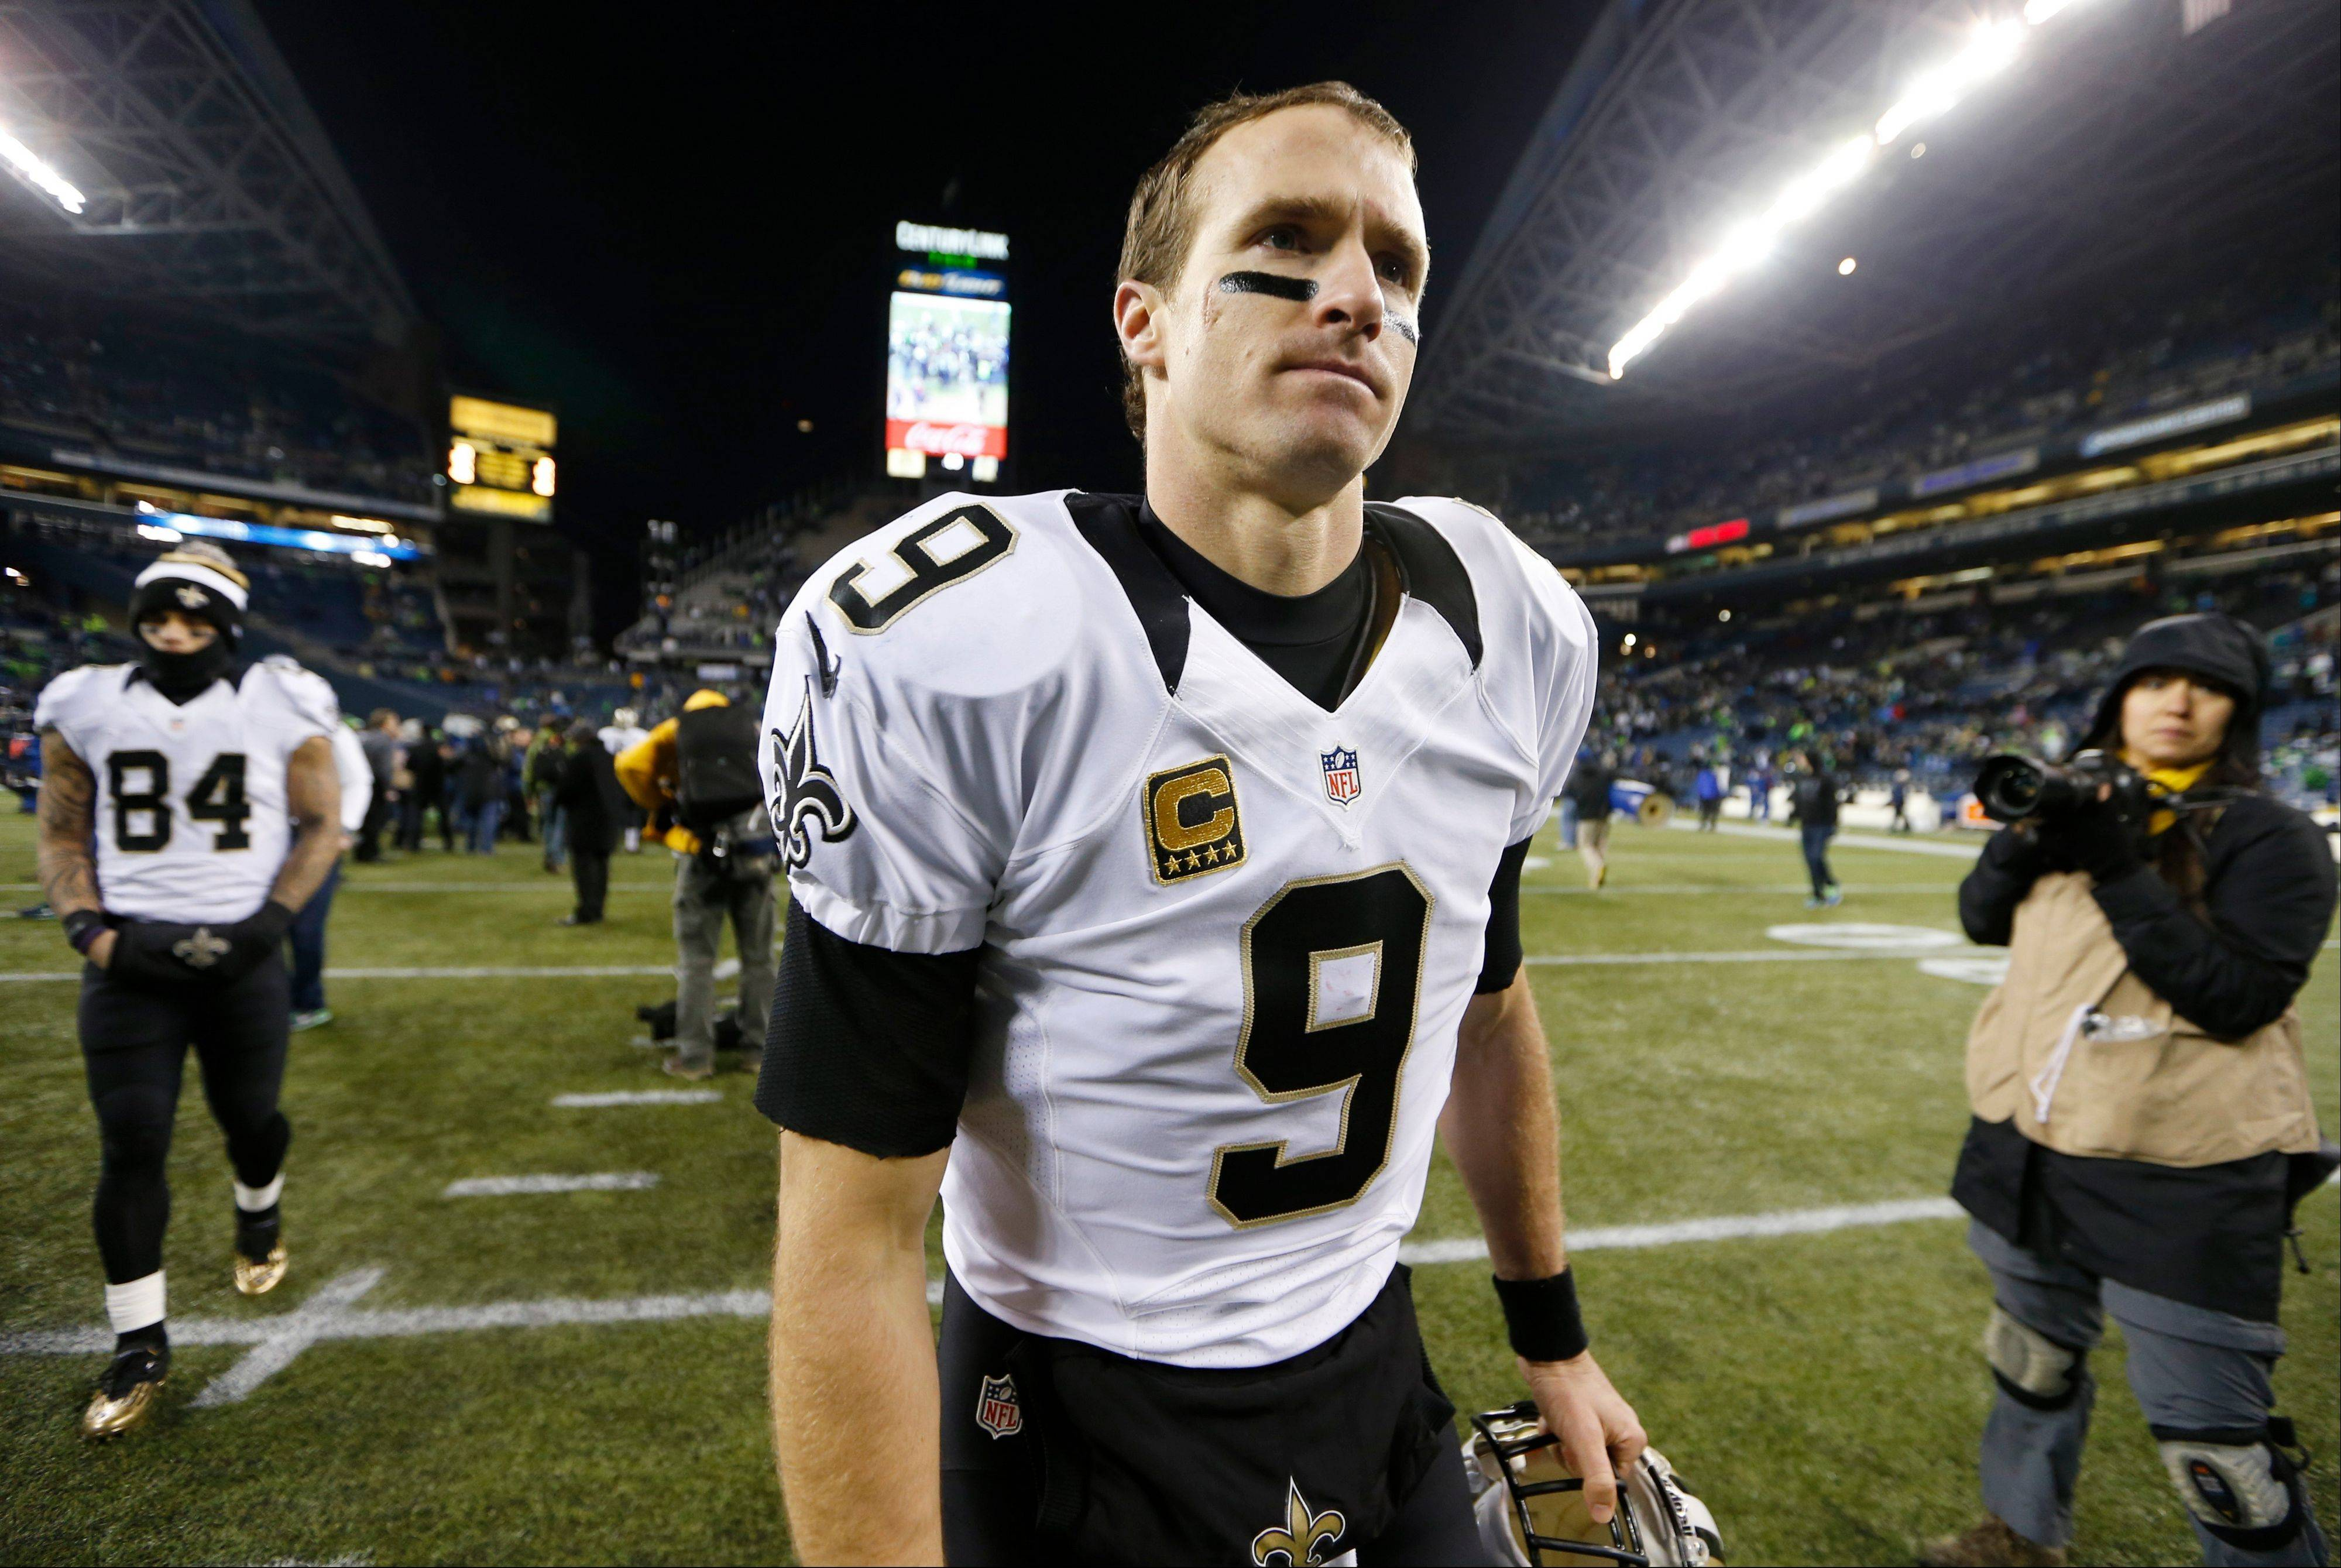 Quarterback Drew Brees and the rest of the New Orleans Saints want to show they're better than the team that was blown out by Seattle in December.